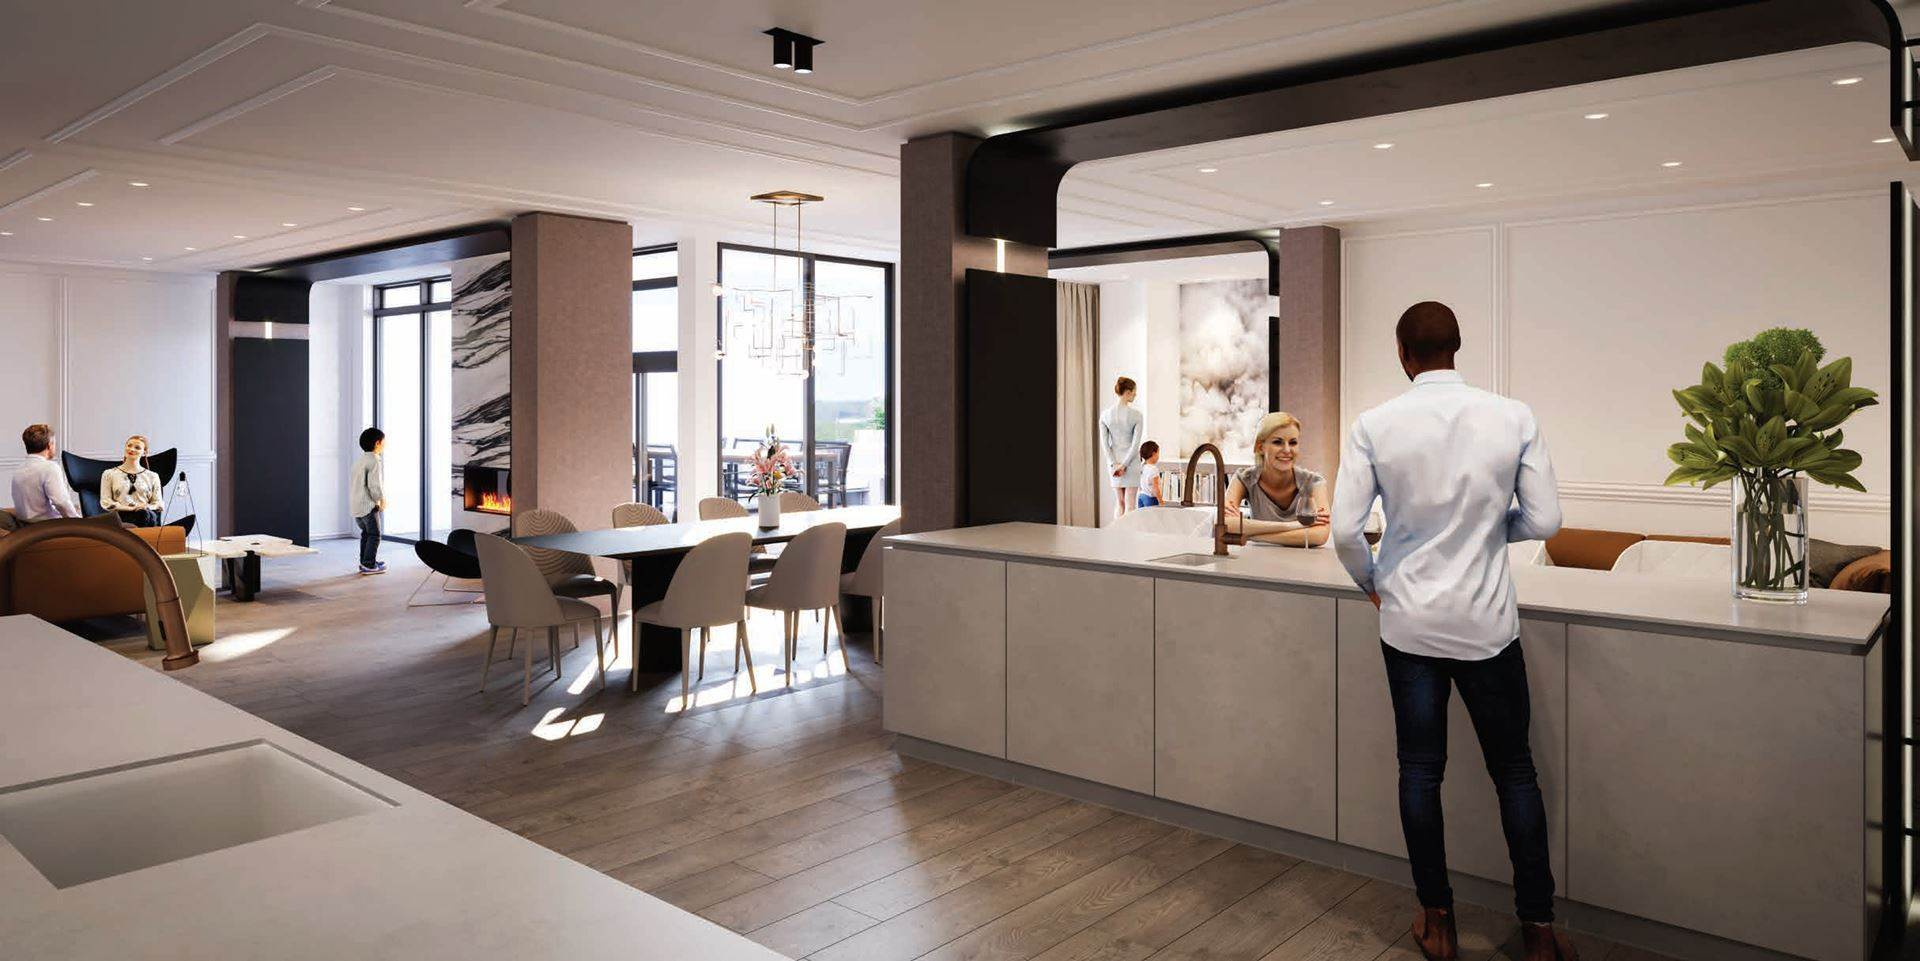 2020_11_05_04_53_10_thedylancondominiums_chestnuthilldevelopments_rendering_partyroom